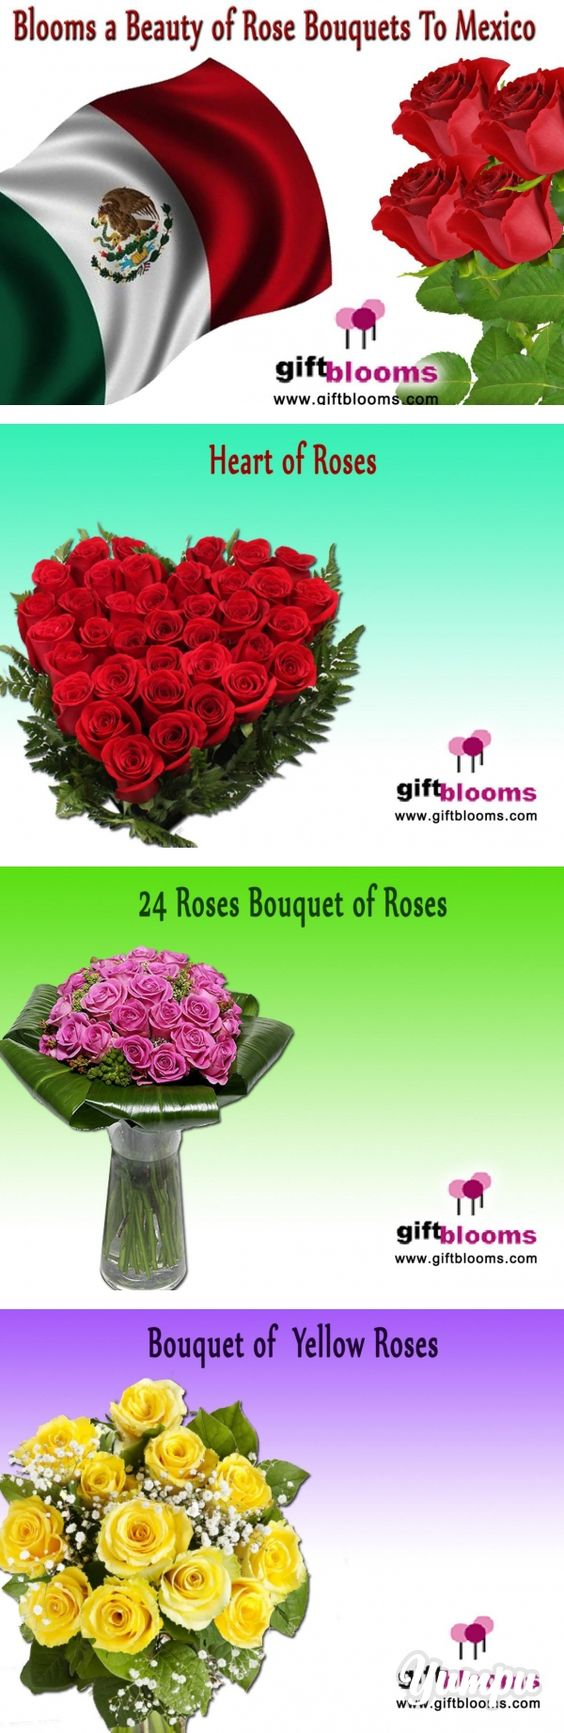 Blooms a Beauty of Rose Bouquets to Mexico - Magazine with 8 pages ...